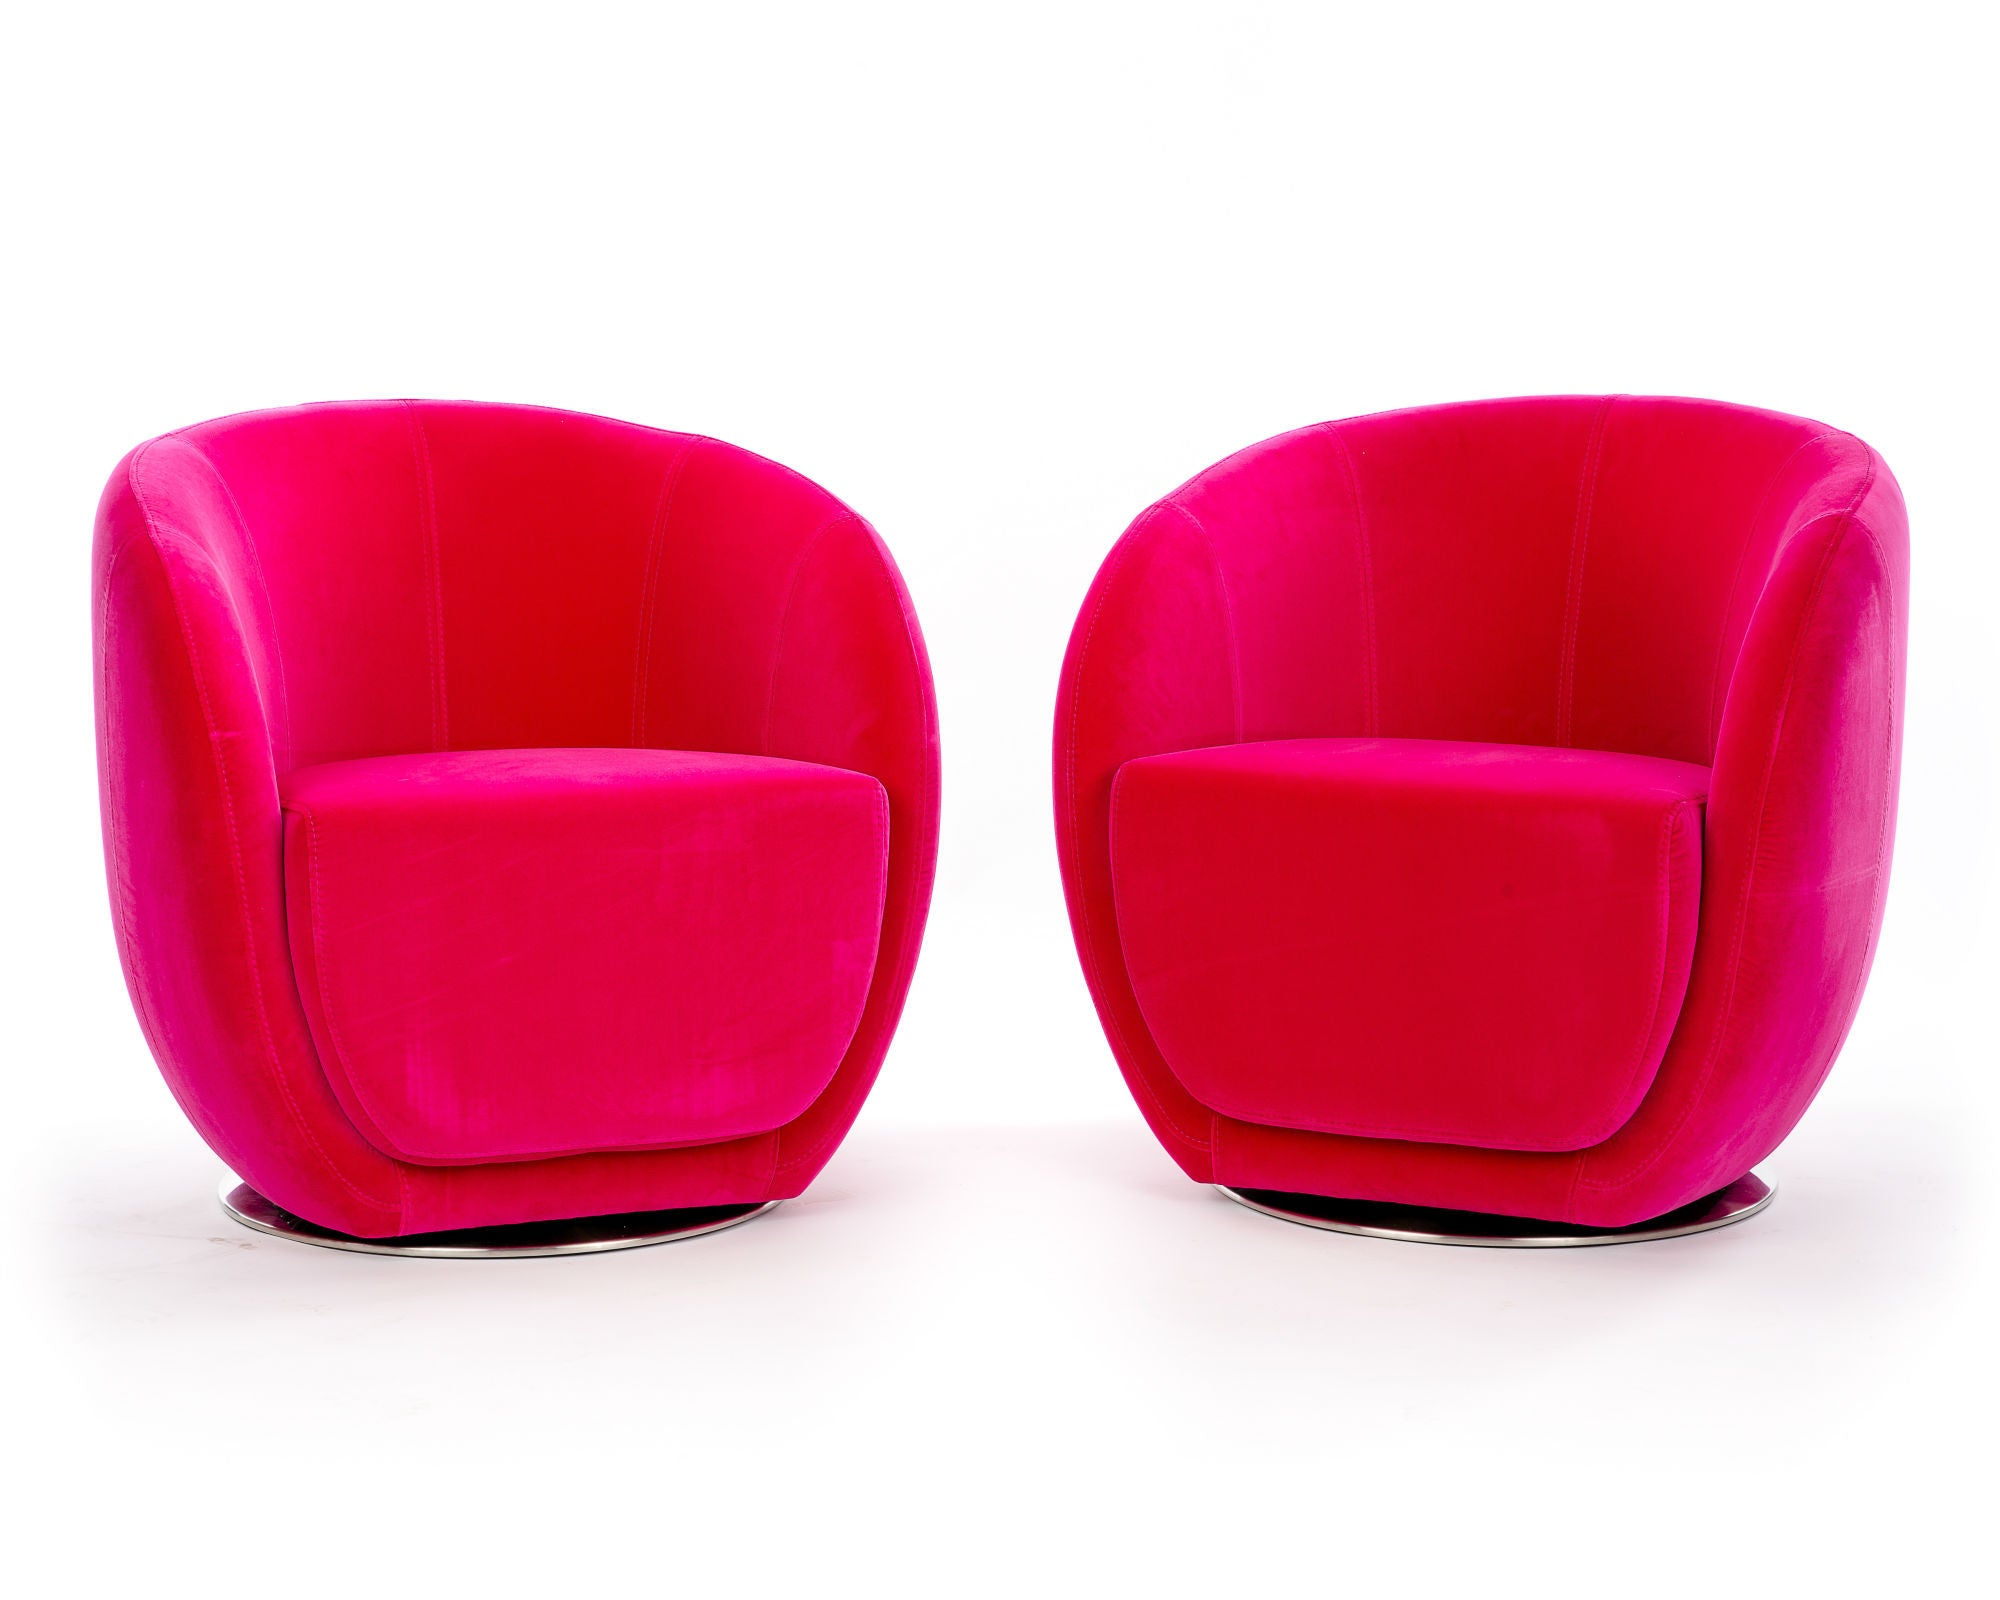 Fuchsia Ovo Rotative Chairs